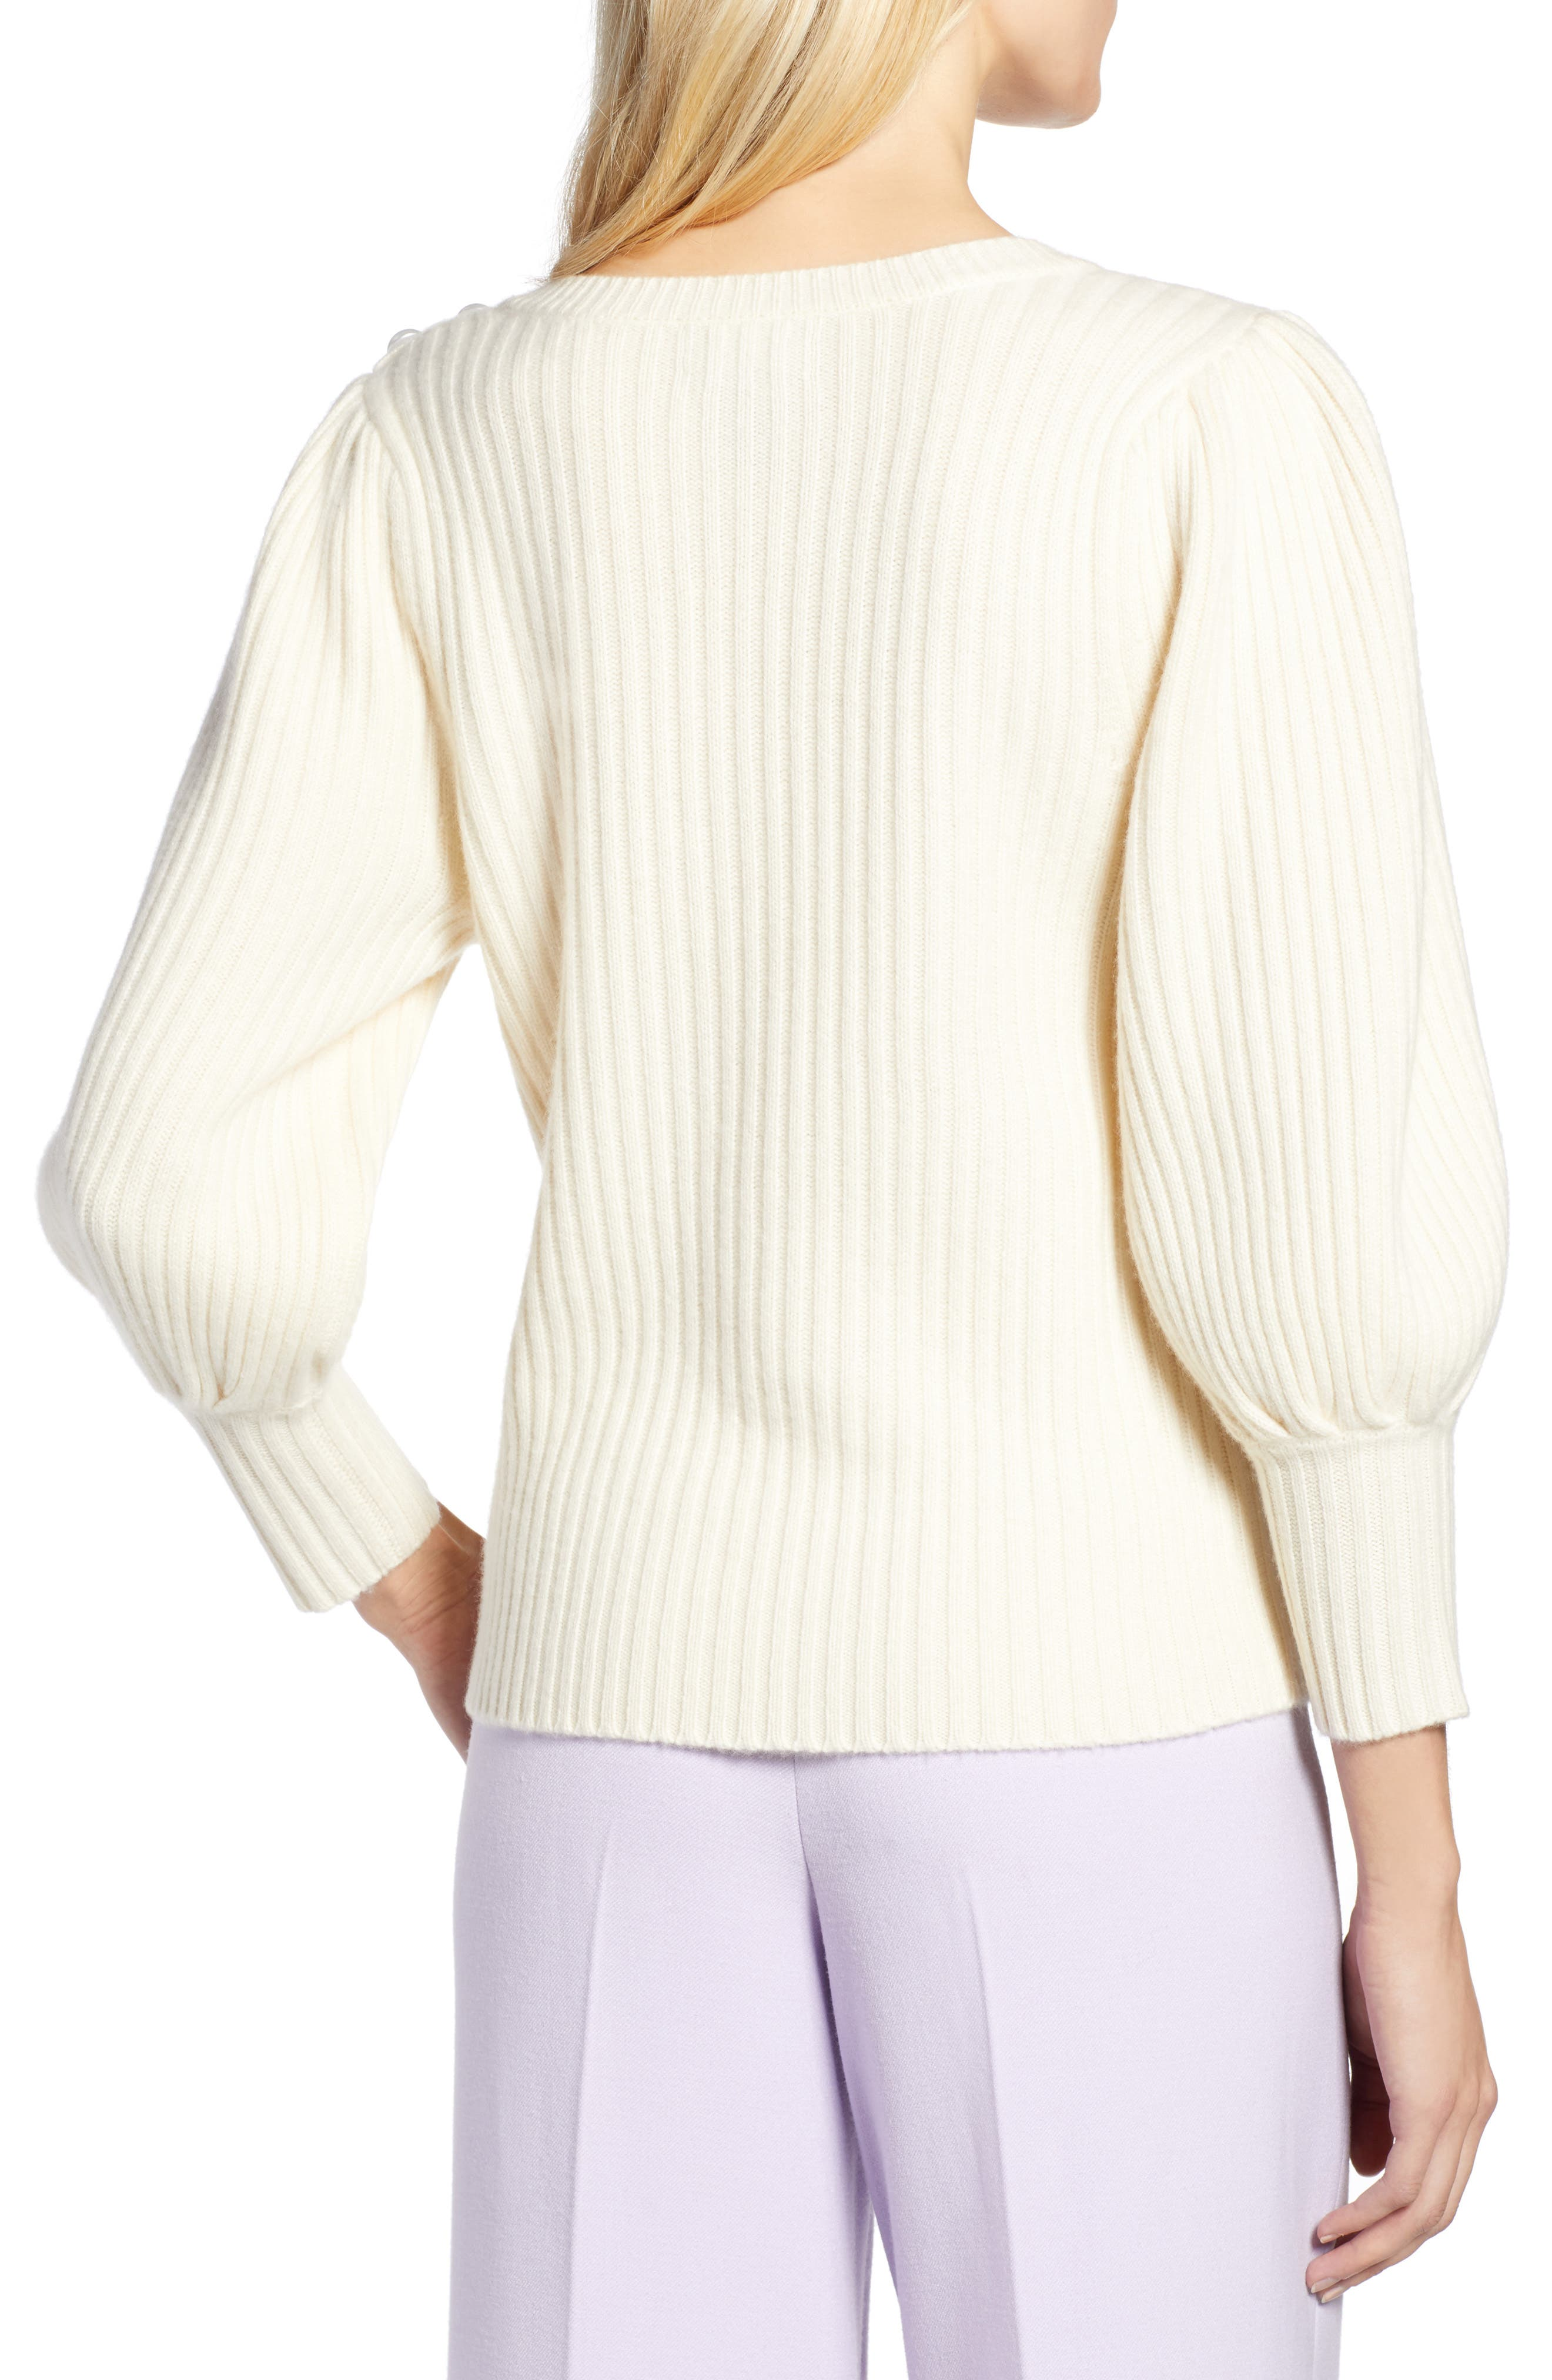 x Atlantic-Pacific Balloon Sleeve Wool & Cashmere Sweater,                             Alternate thumbnail 3, color,                             900